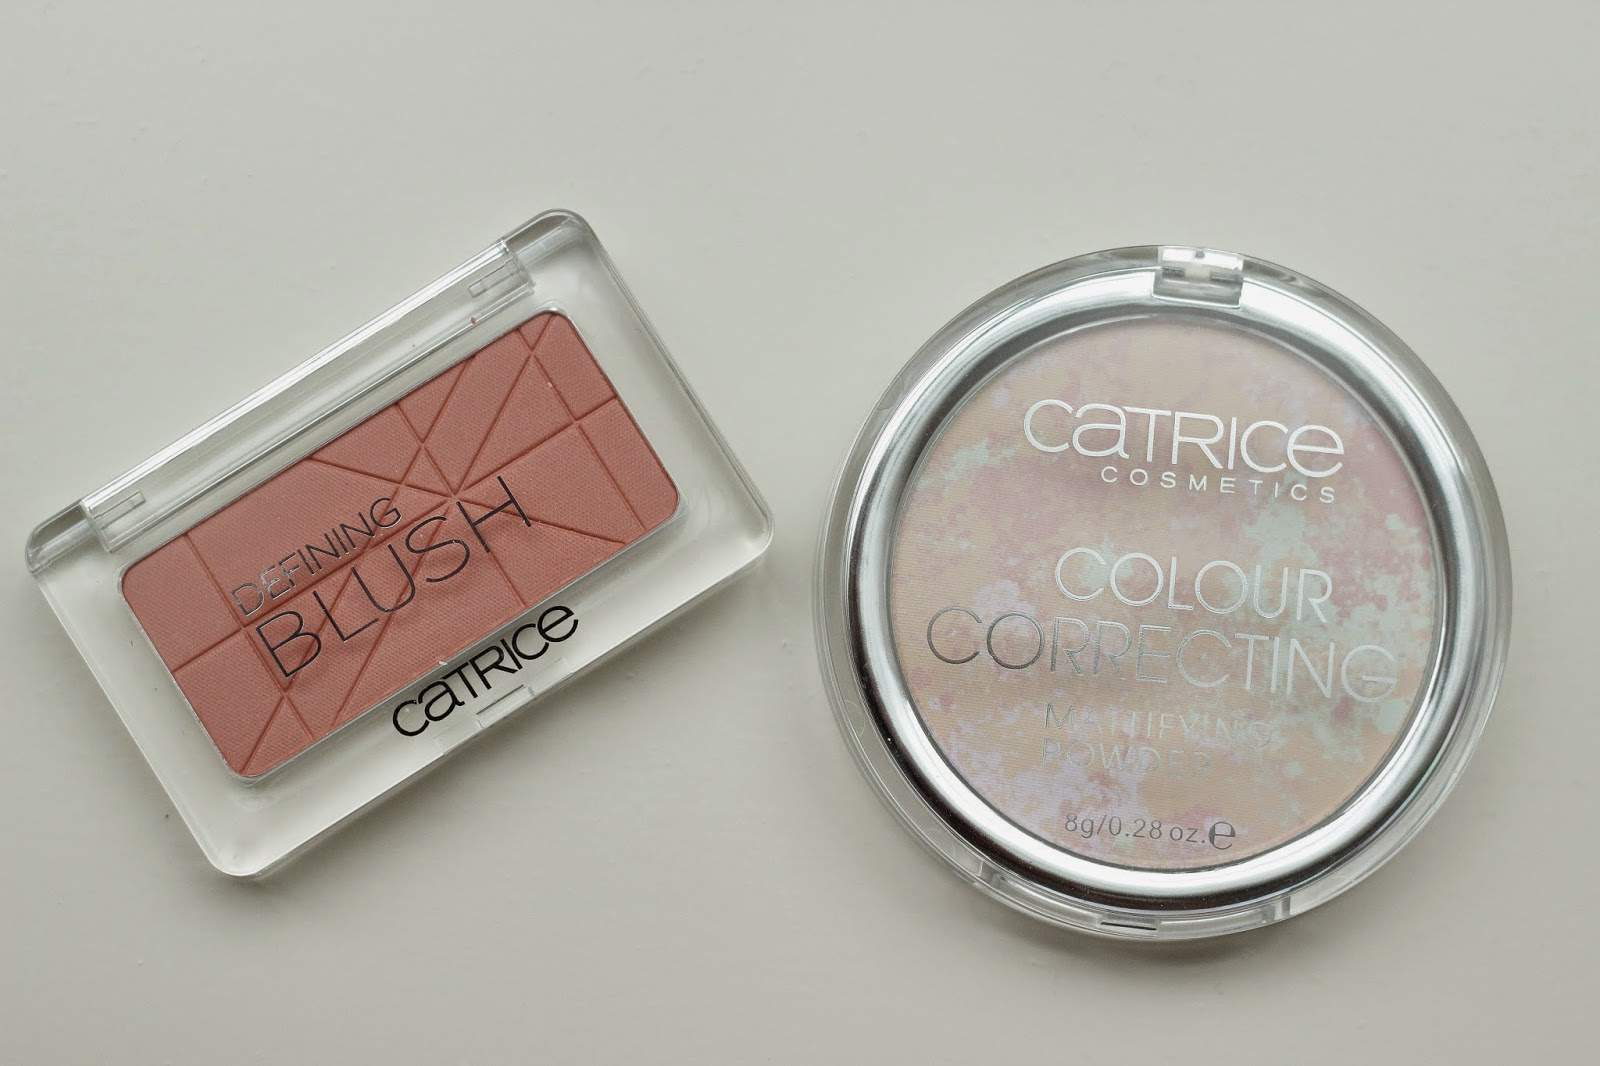 review catrice defining blush mandy-rine, review catrice colour correcting mattifying powder